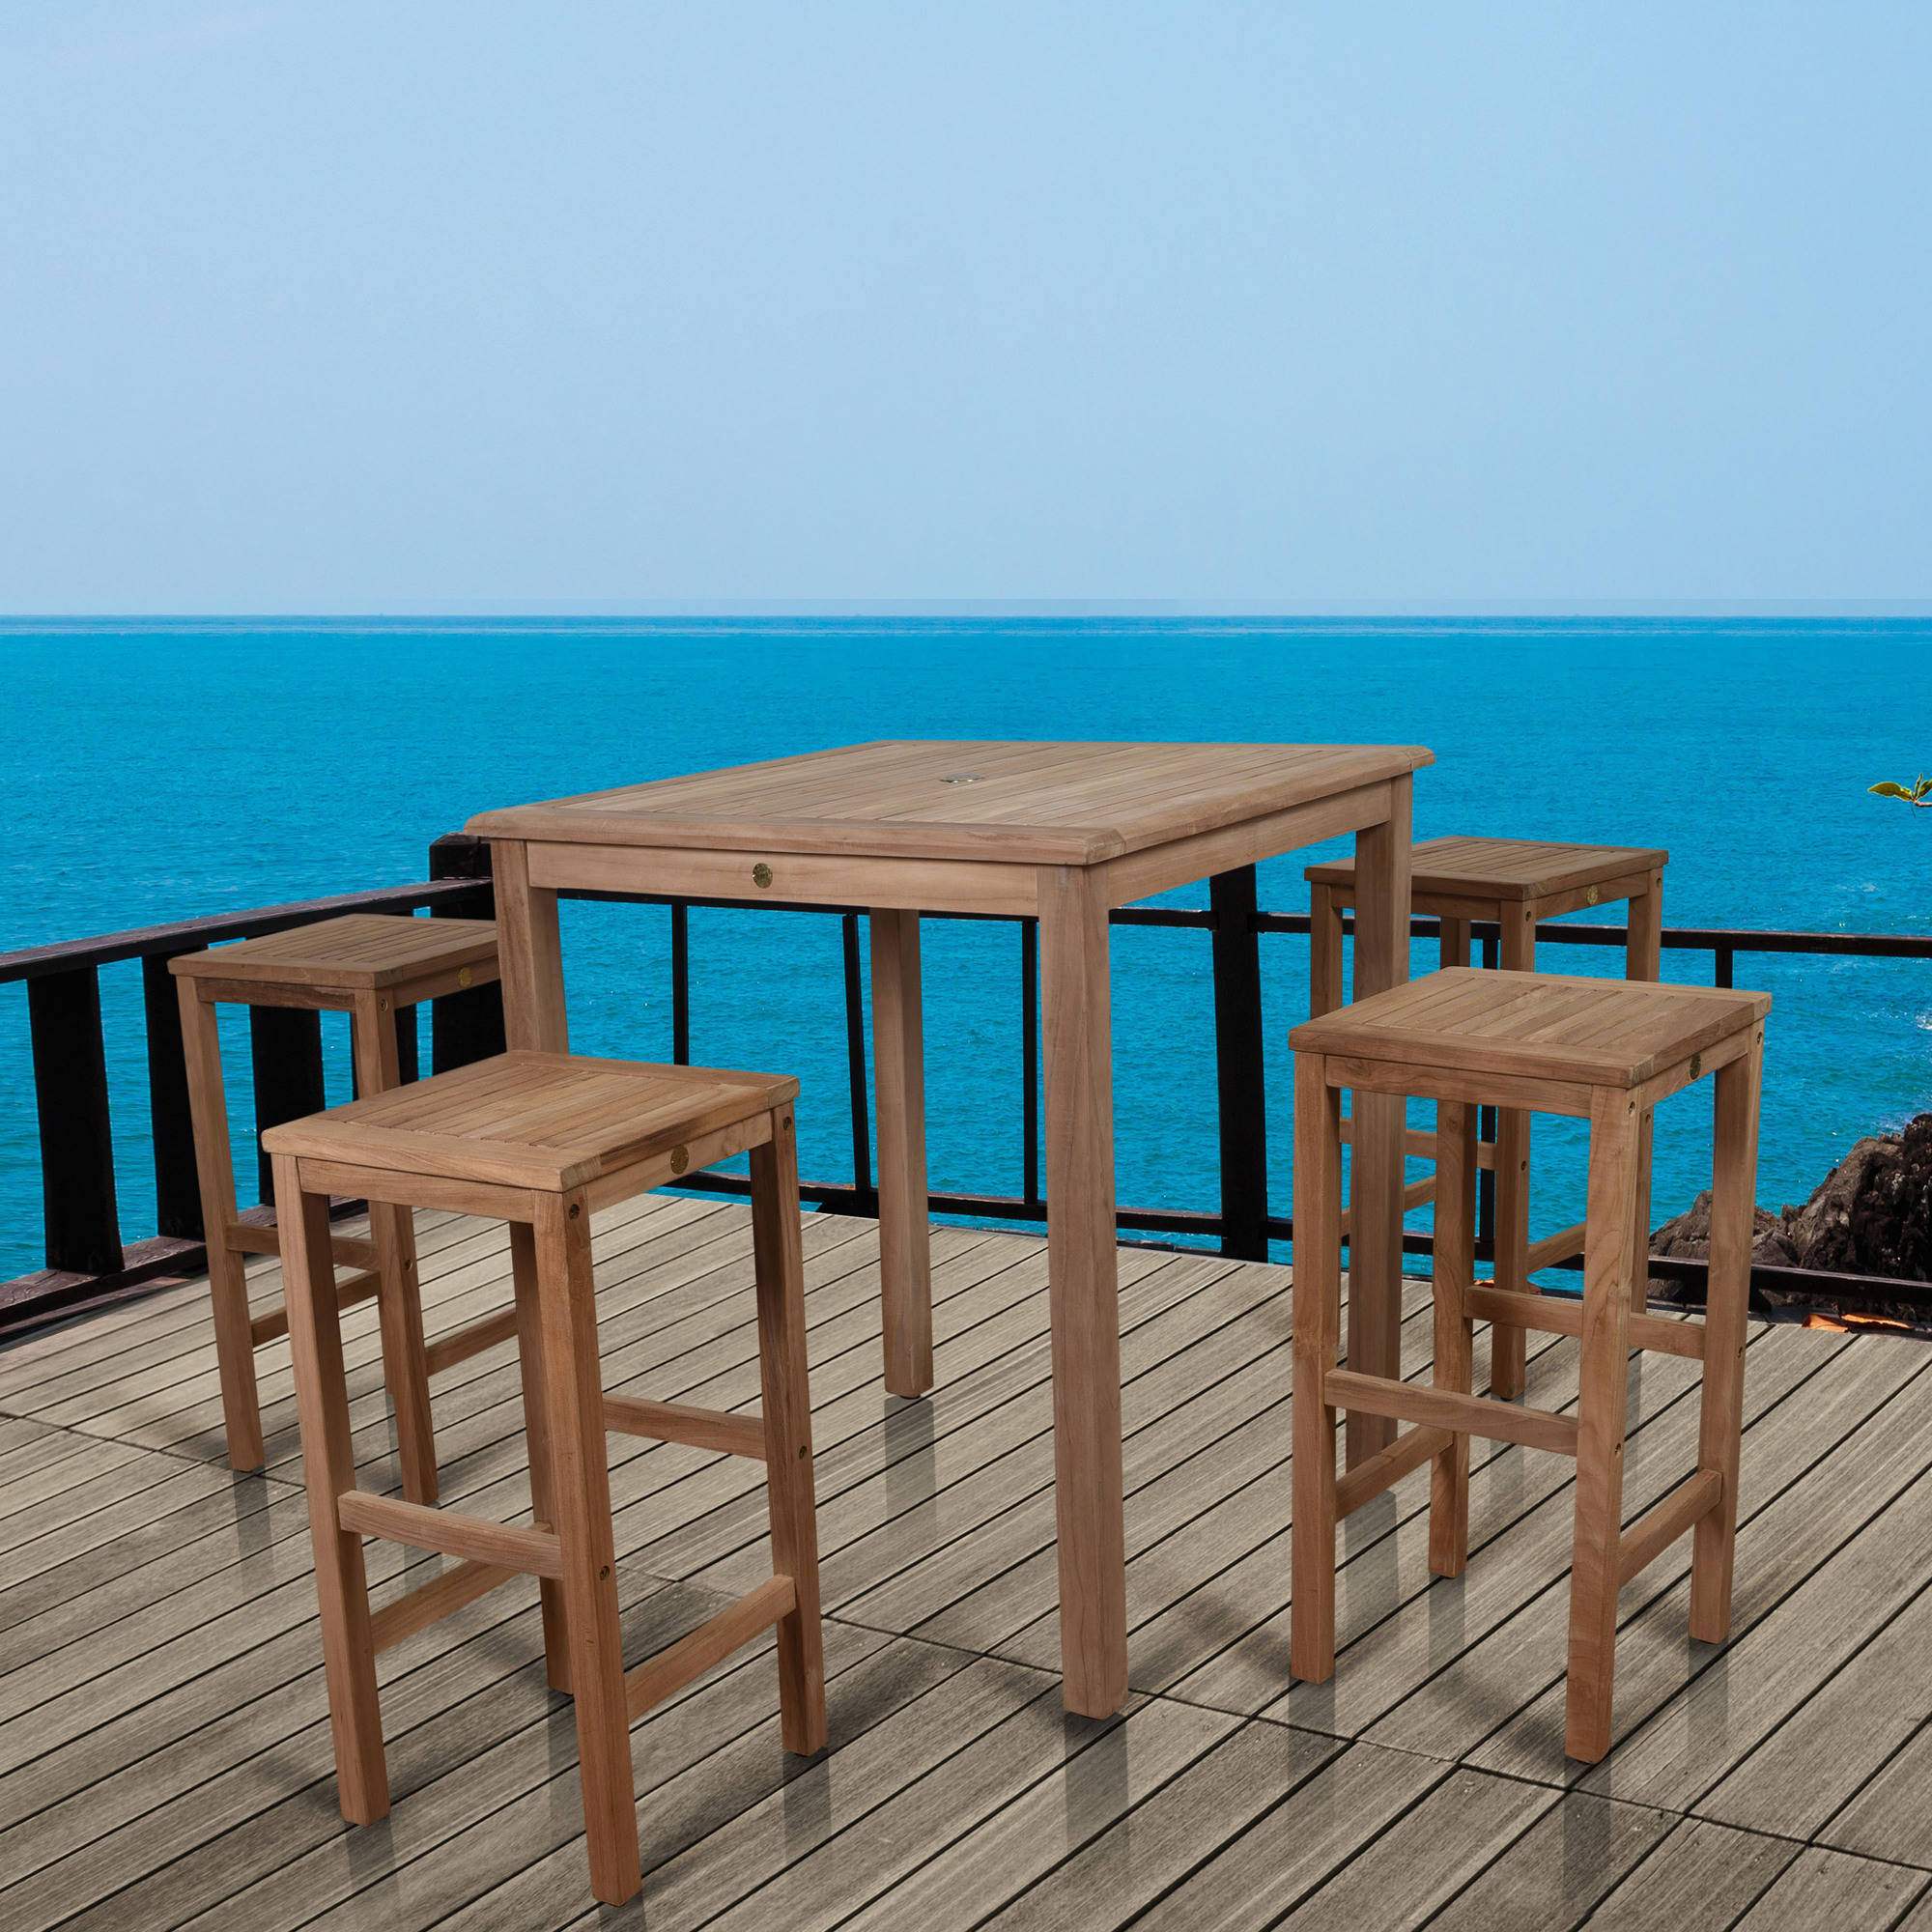 Amazonia Ares Pub Table set with 4 Texas Teak Wood Bar Stools by INTERNATIONAL HOME